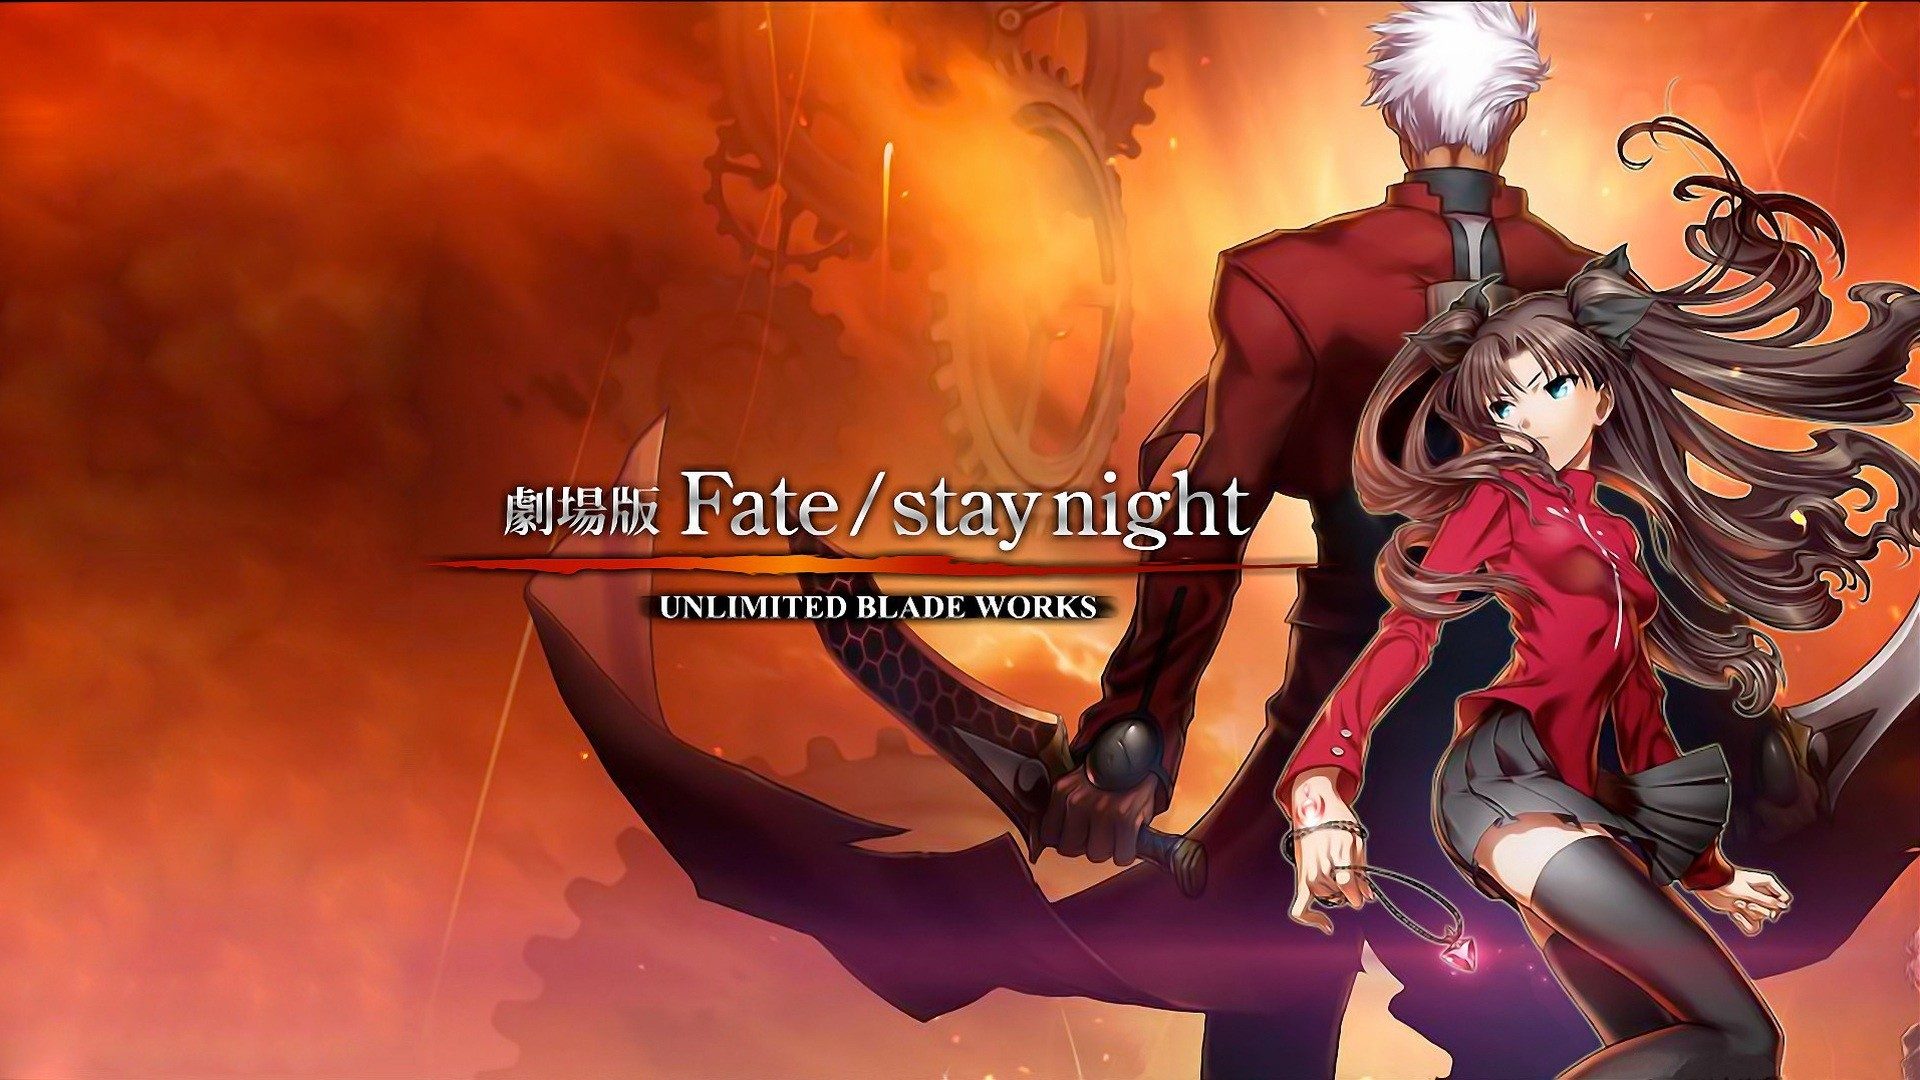 1920x1080 Fate Stay Night Wallpaper Archer 36 Free Hd Wallpaper - Animewp.com